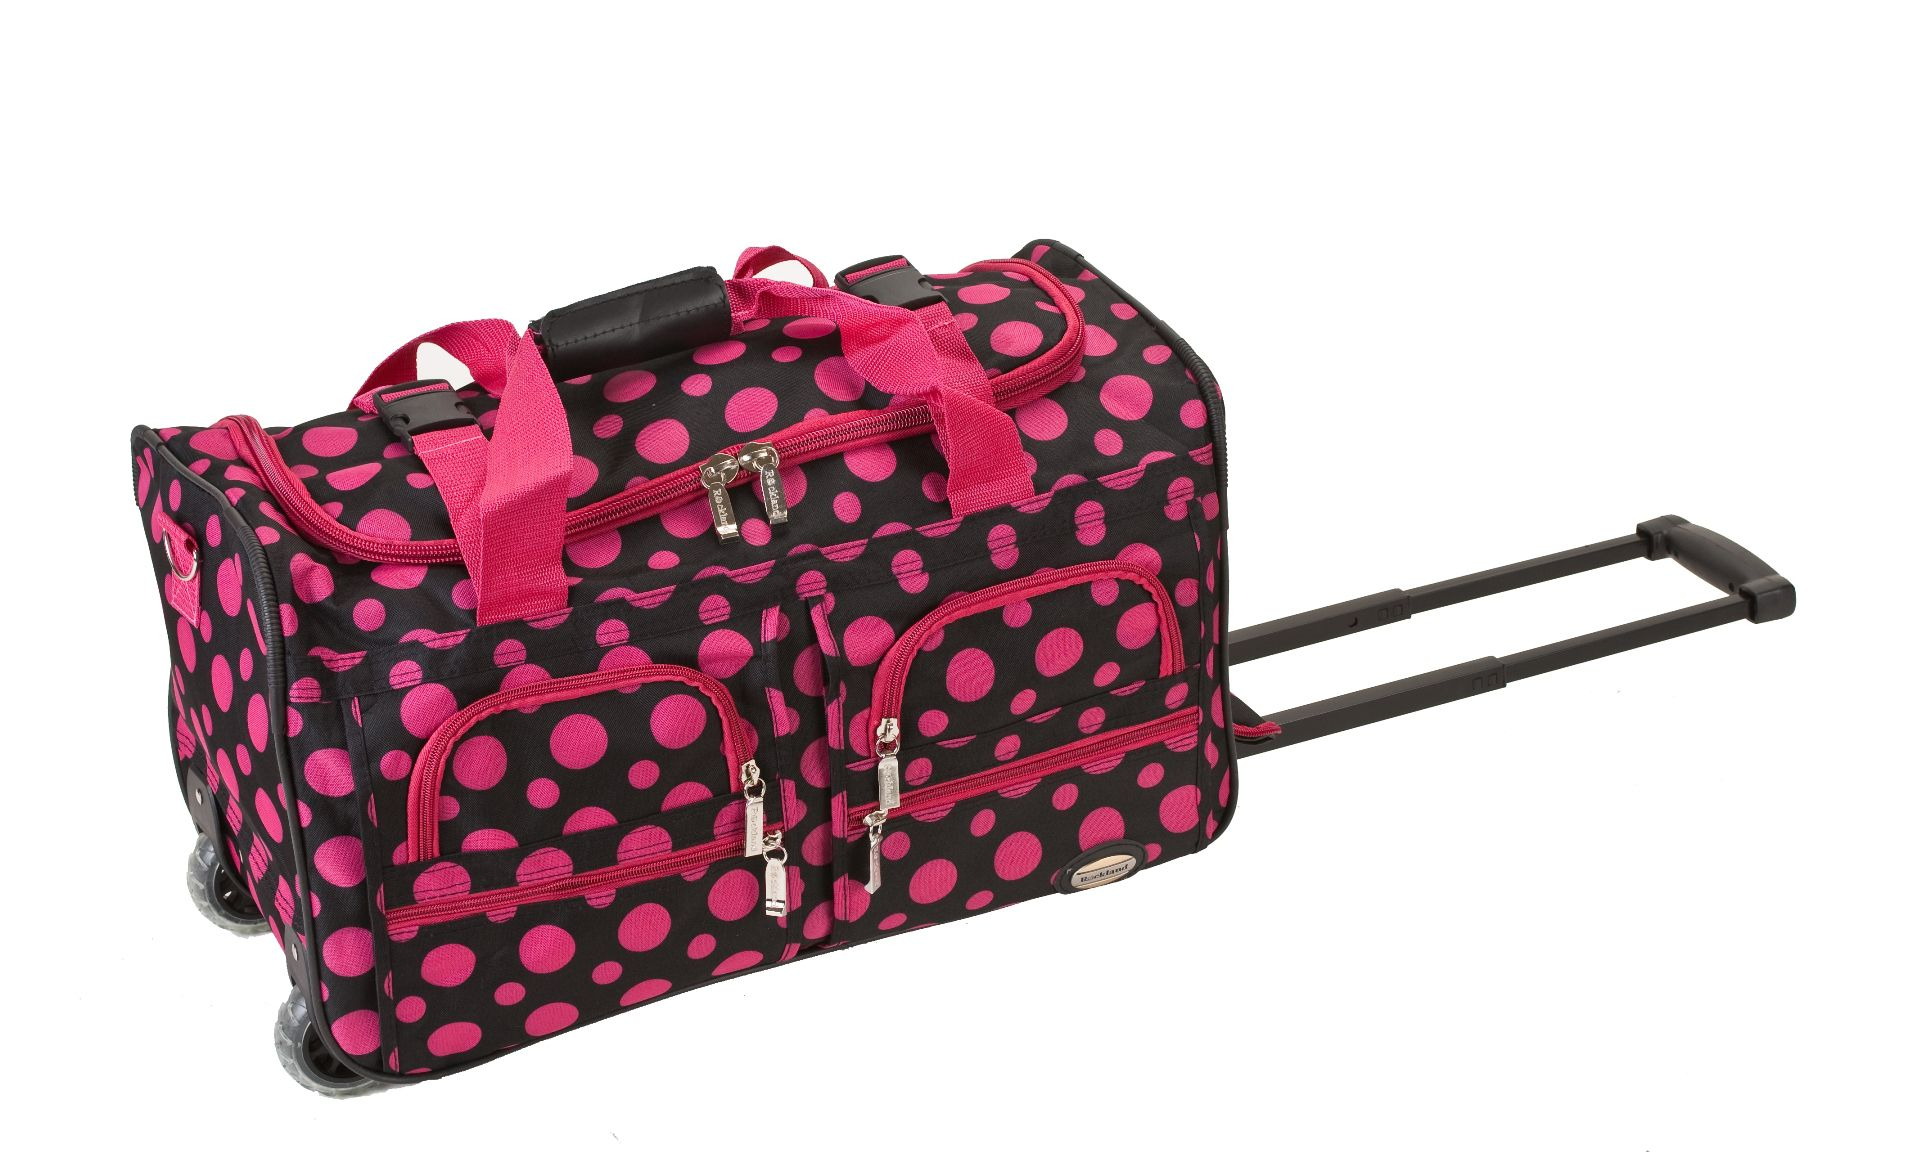 Travel Bag Kmart Rockland Fox Luggage 22 Quot Rolling Duffle Bag Black Pink Dot